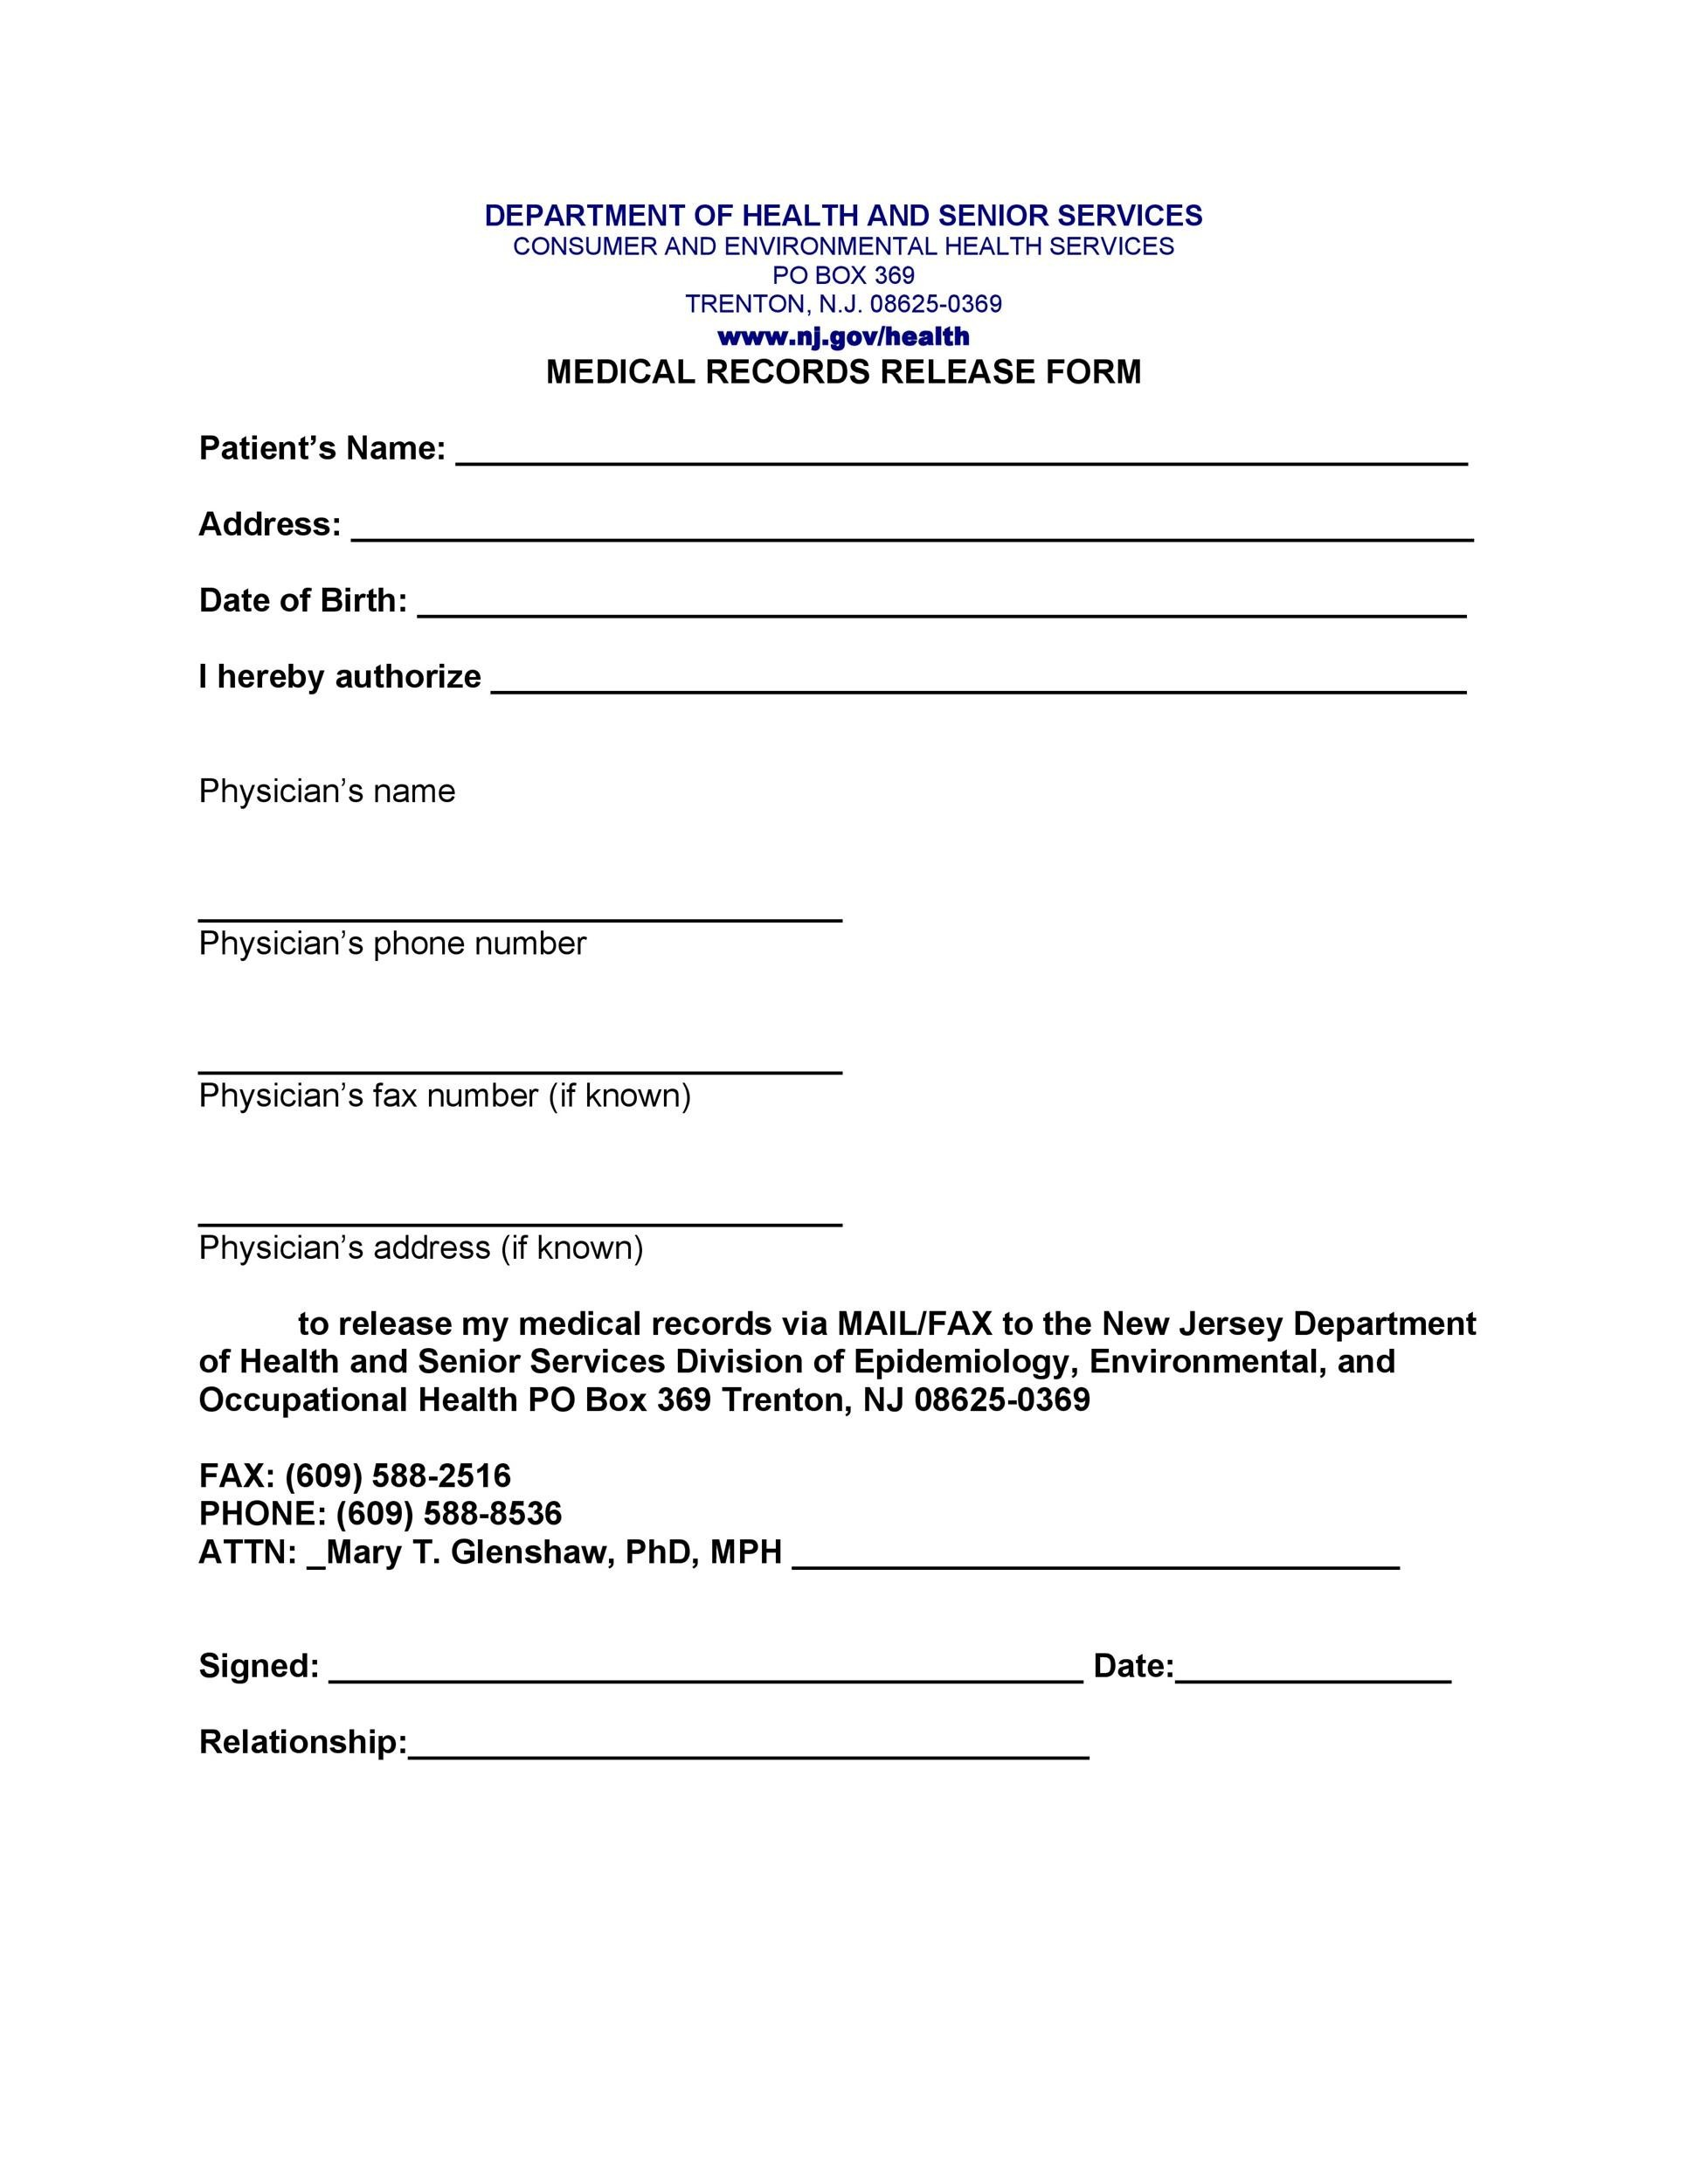 Medical Authorization Form Example Whats More Picture Showed Above